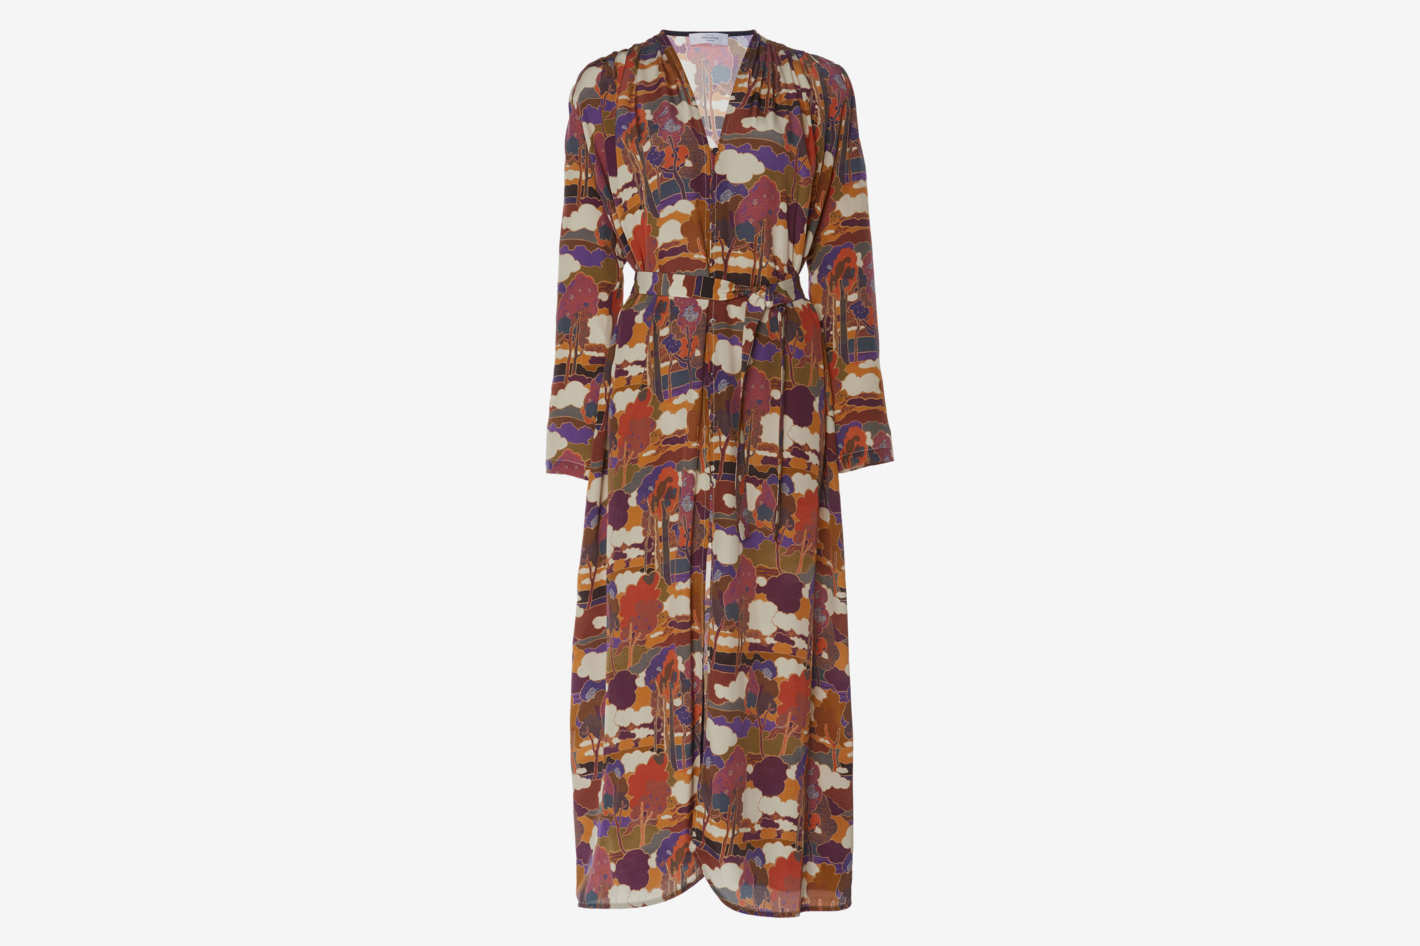 Roseanna Prospect Road Mercy Dress